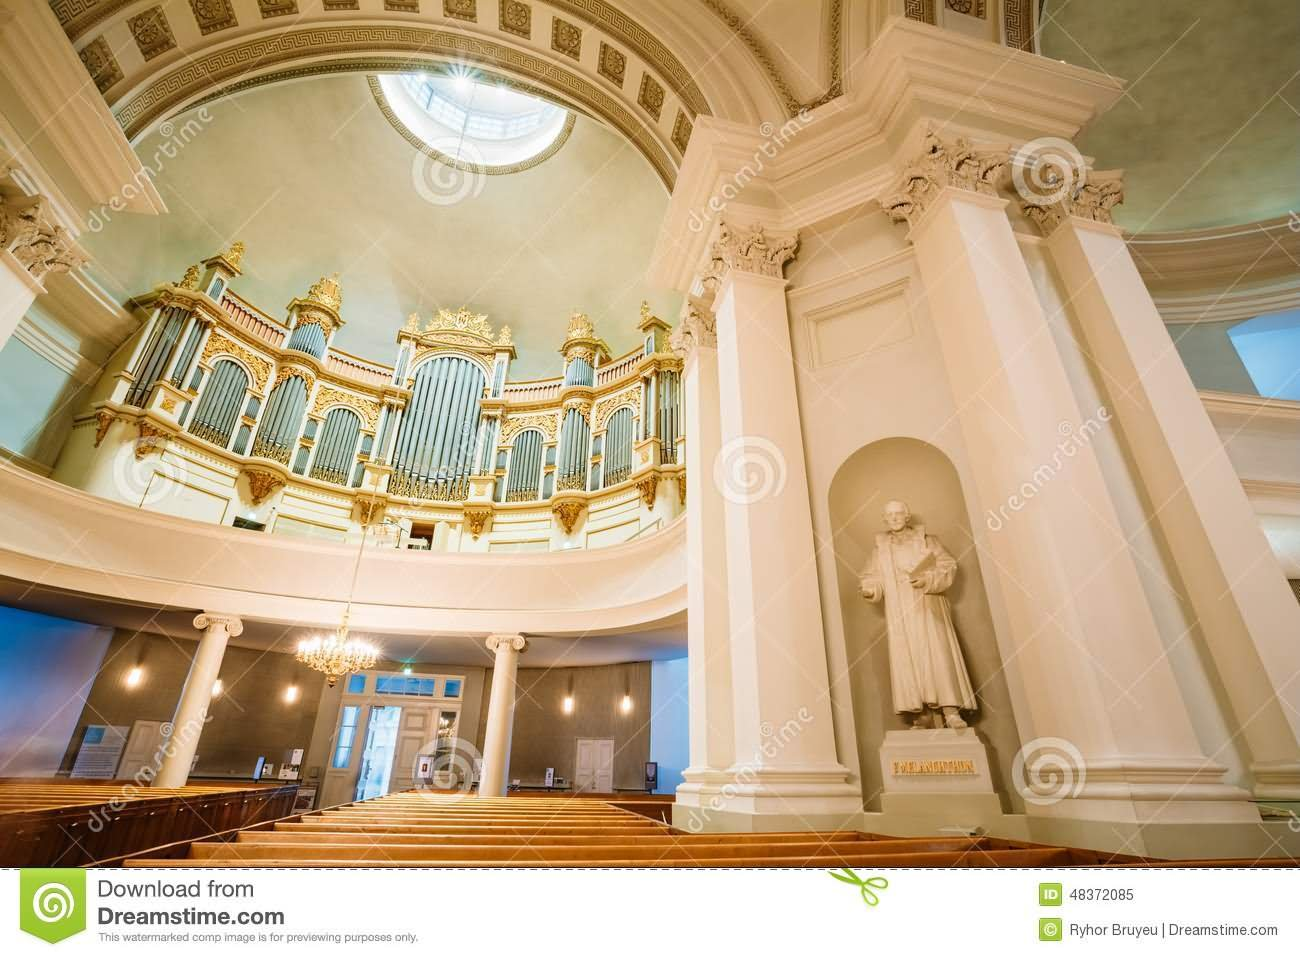 25 Incredible Inside View Images Of The Helsinki Cathedral